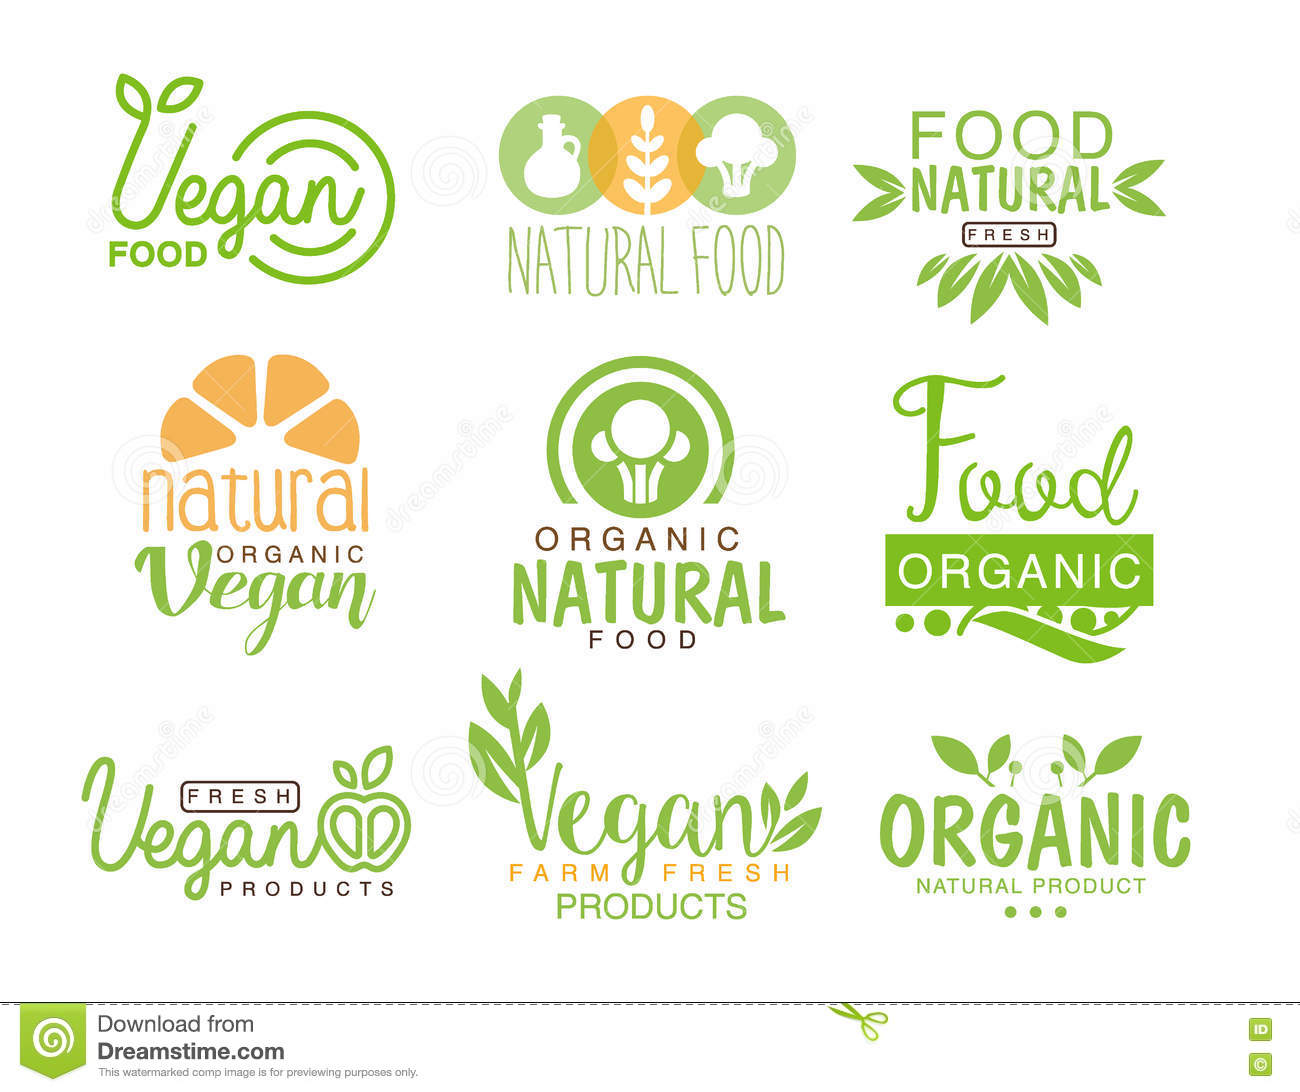 vegan natural food set of template cafe logo signs in green orange